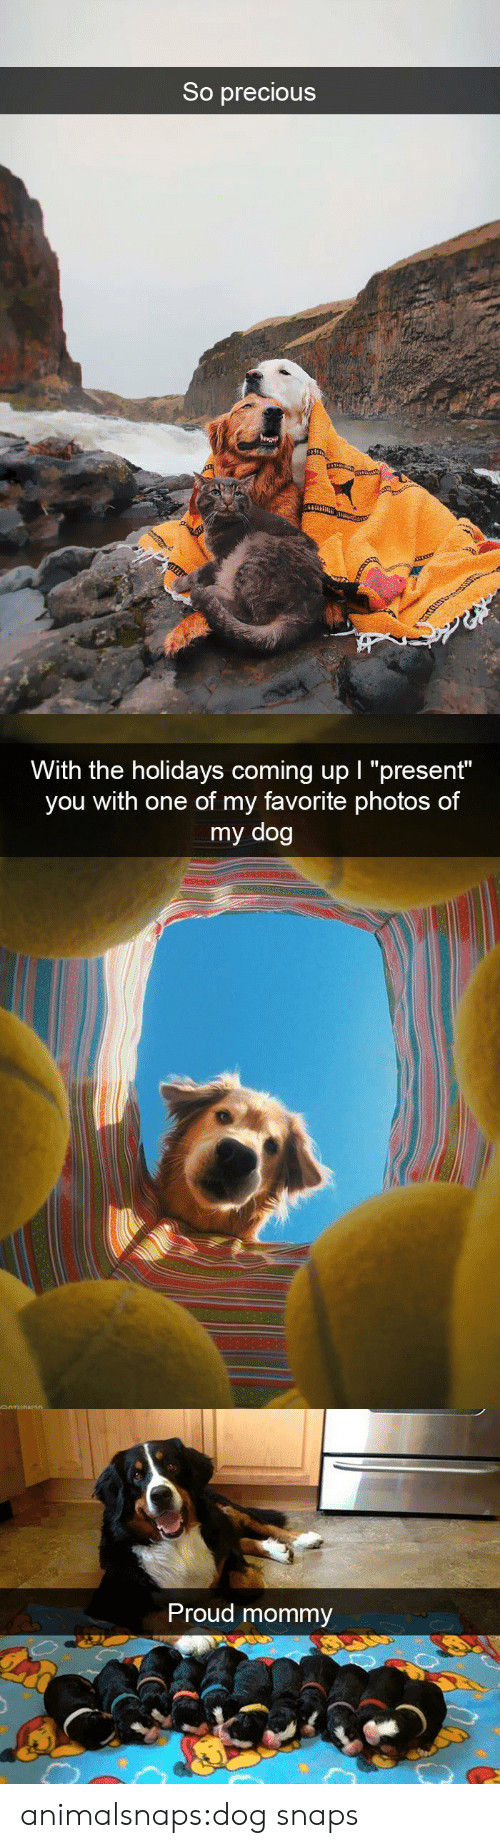 """Precious, Target, and Tumblr: So precious   With the holidays coming up I """"present""""  you with one of my favorite photos of  my dog   Proud mommy animalsnaps:dog snaps"""